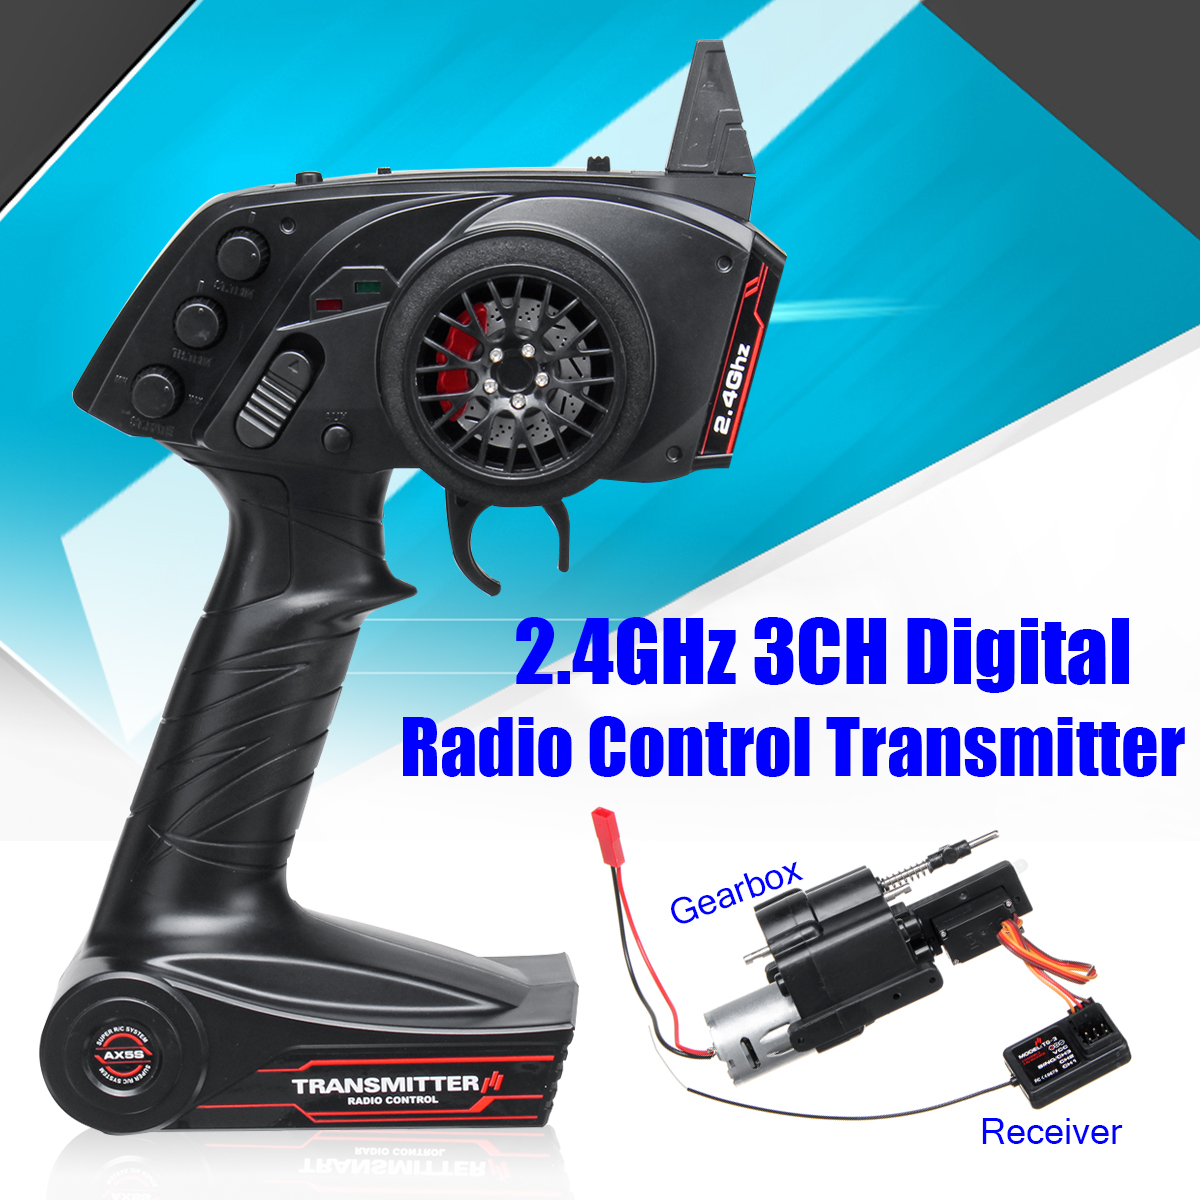 3CH Radio Transmitter Super Active Throttle Limit Range And Speed Change Gear Box For WPL B1 B24 B16 C24 1/16 4WD 6WD Rc Car